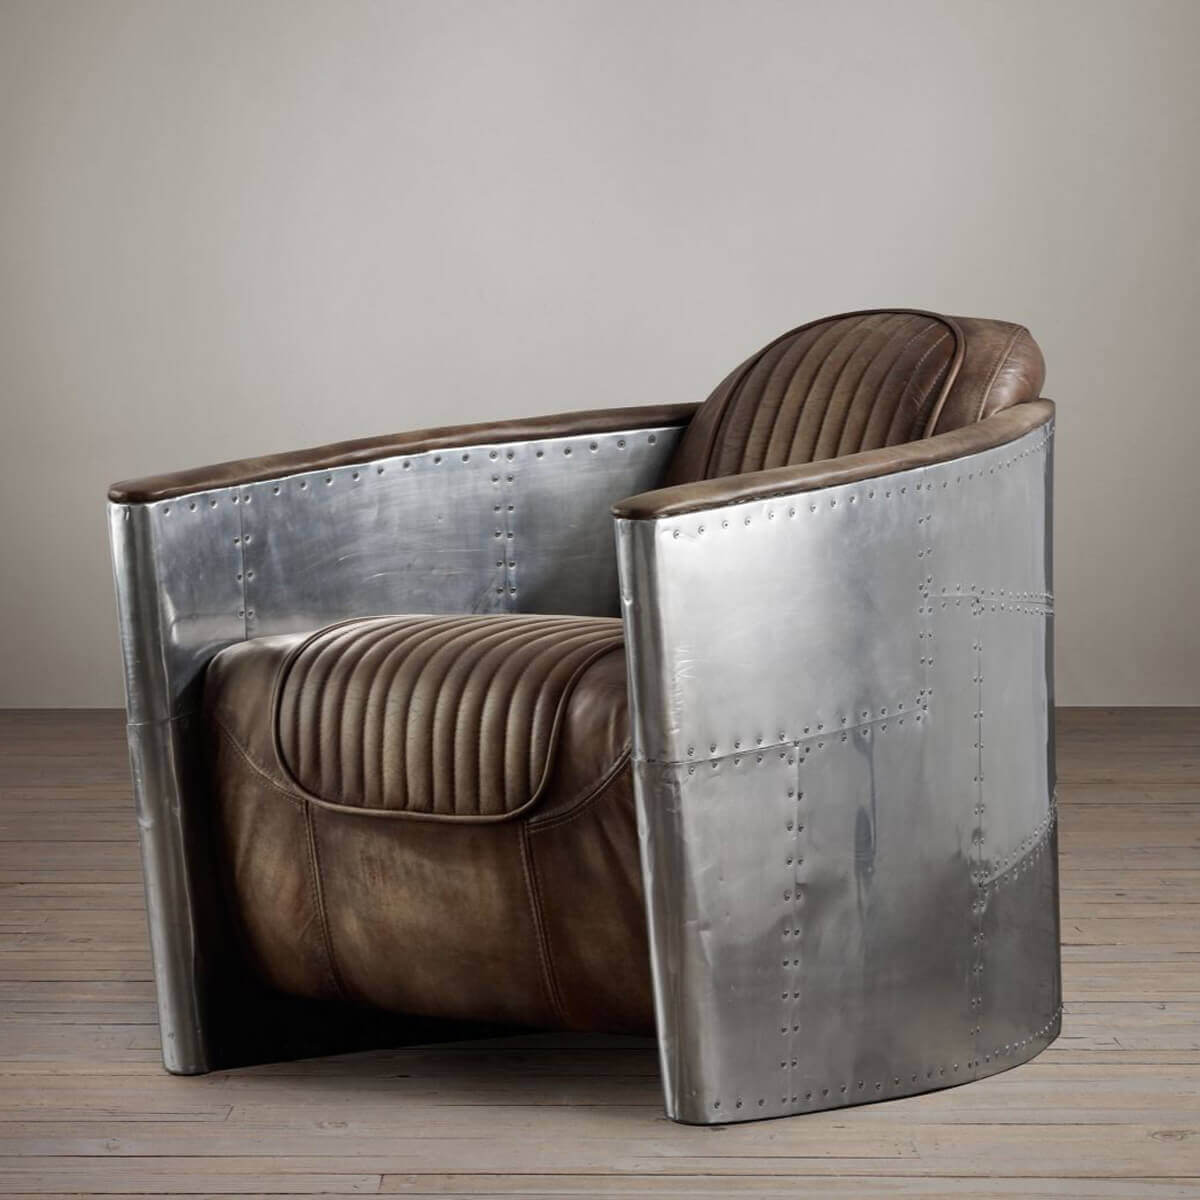 restoration hardware aviator chair used burgundy leather best reading chairs of 2018  interior design news